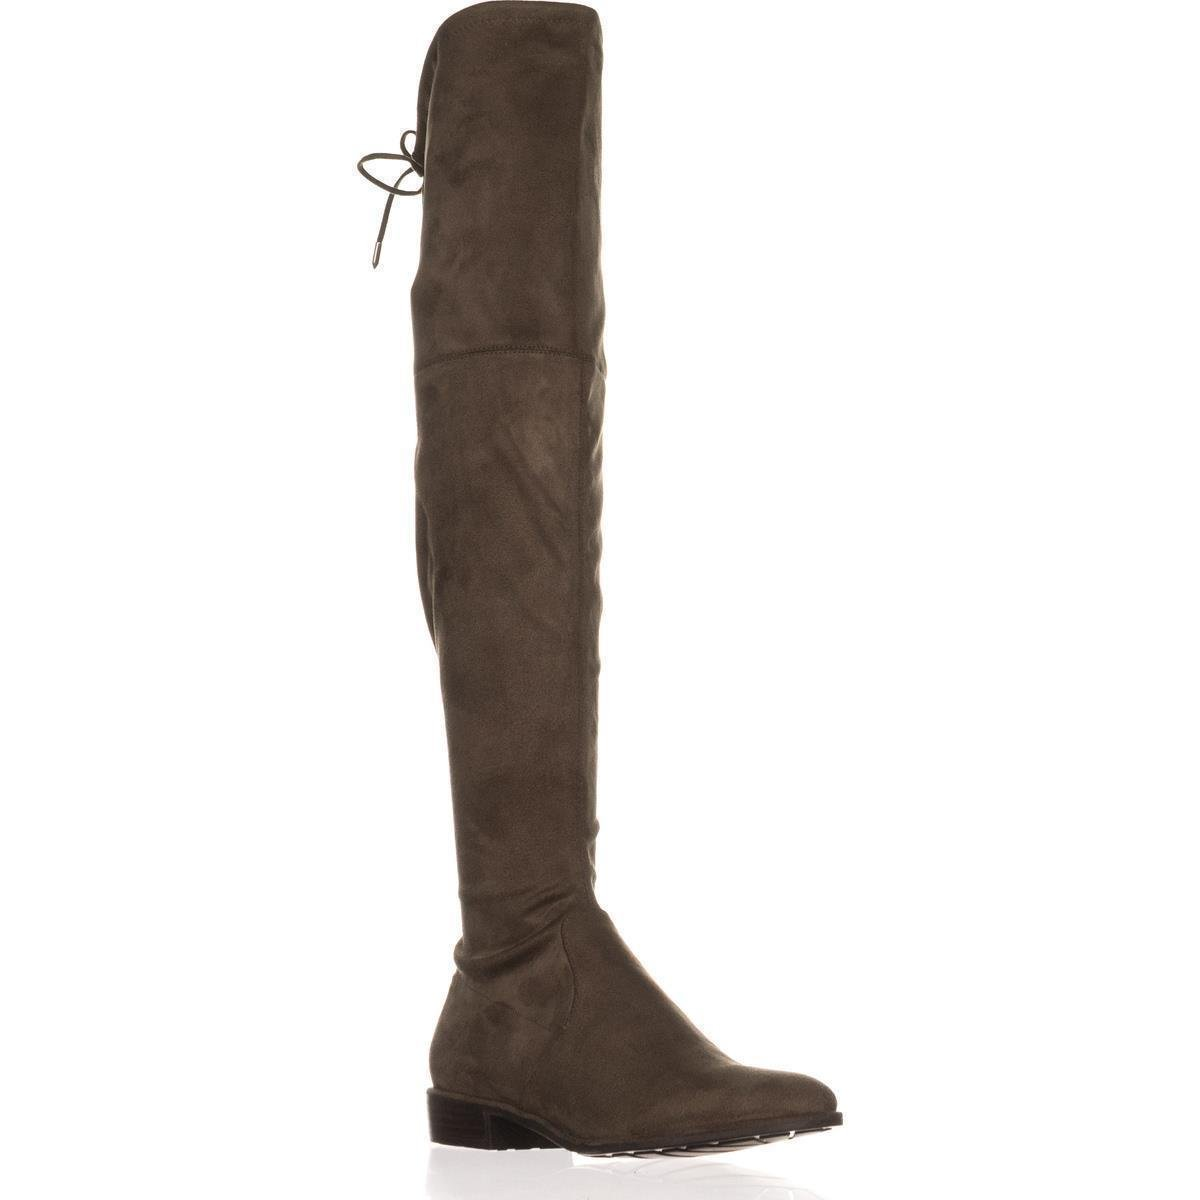 79e38a4fd88 Details about Marc Fisher Womens HUMOR2 Almond Toe Over Knee Fashion Boots